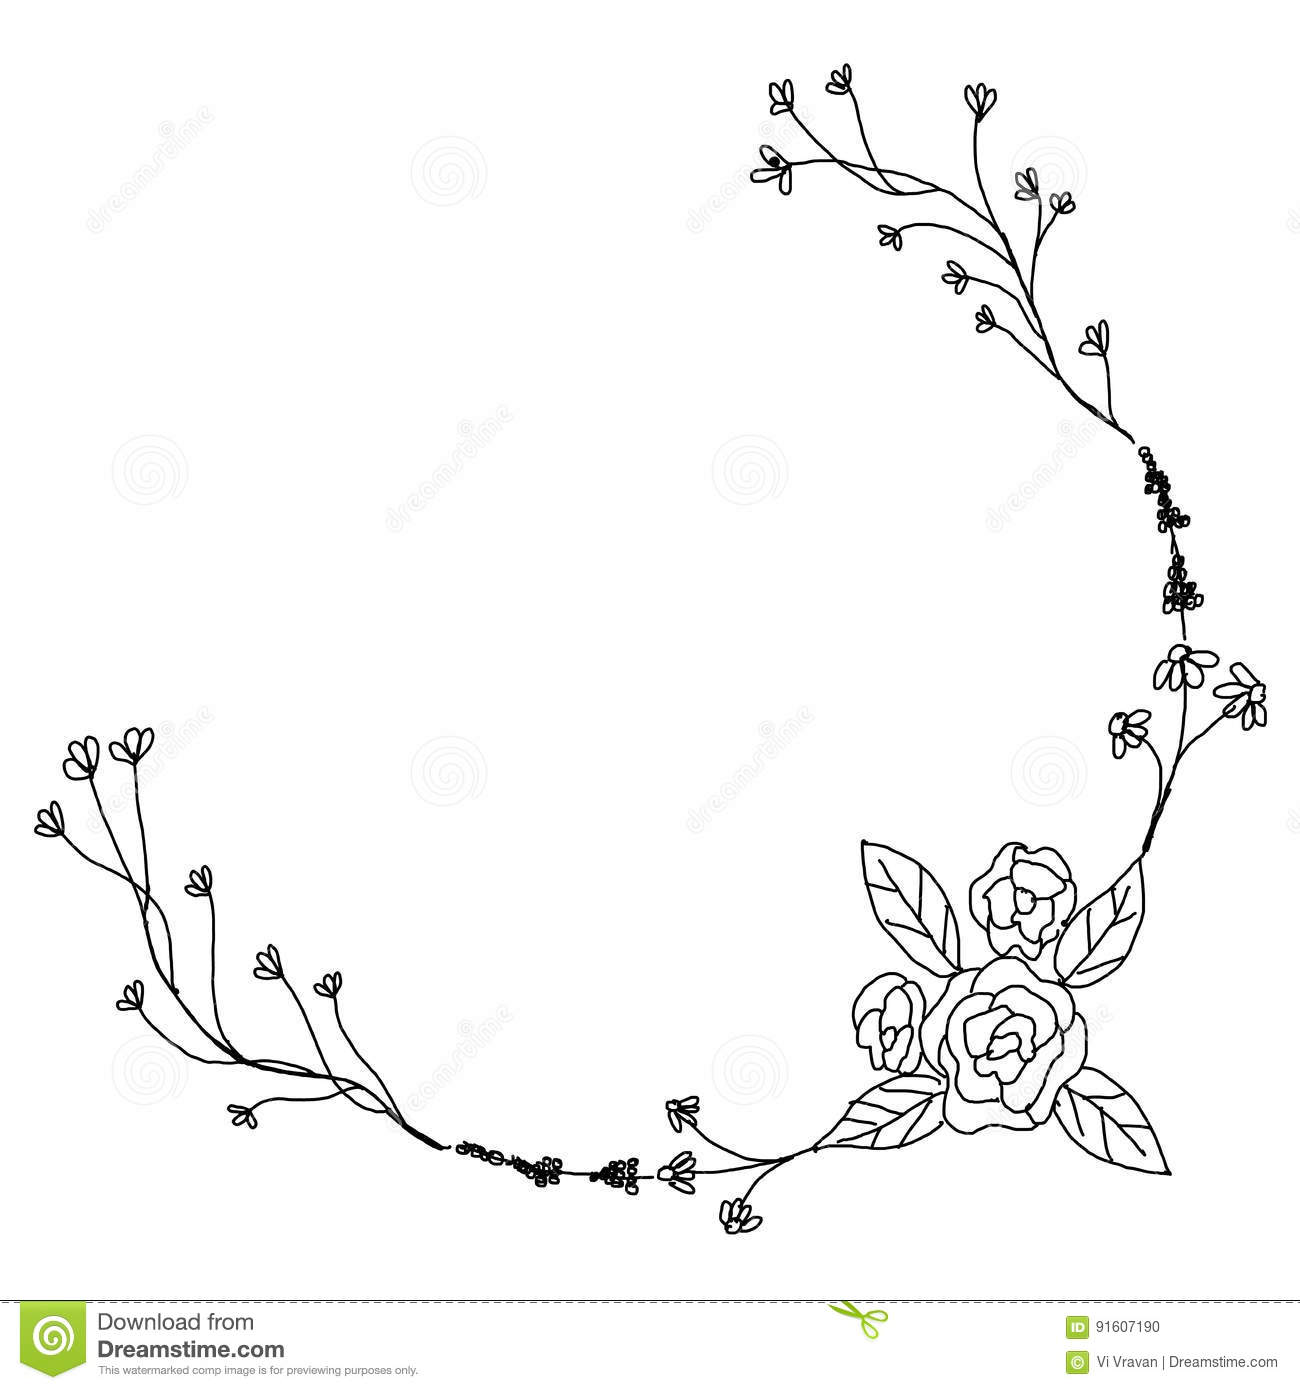 Black and white hand drawn flower vintage design wreath for Decoration drawing